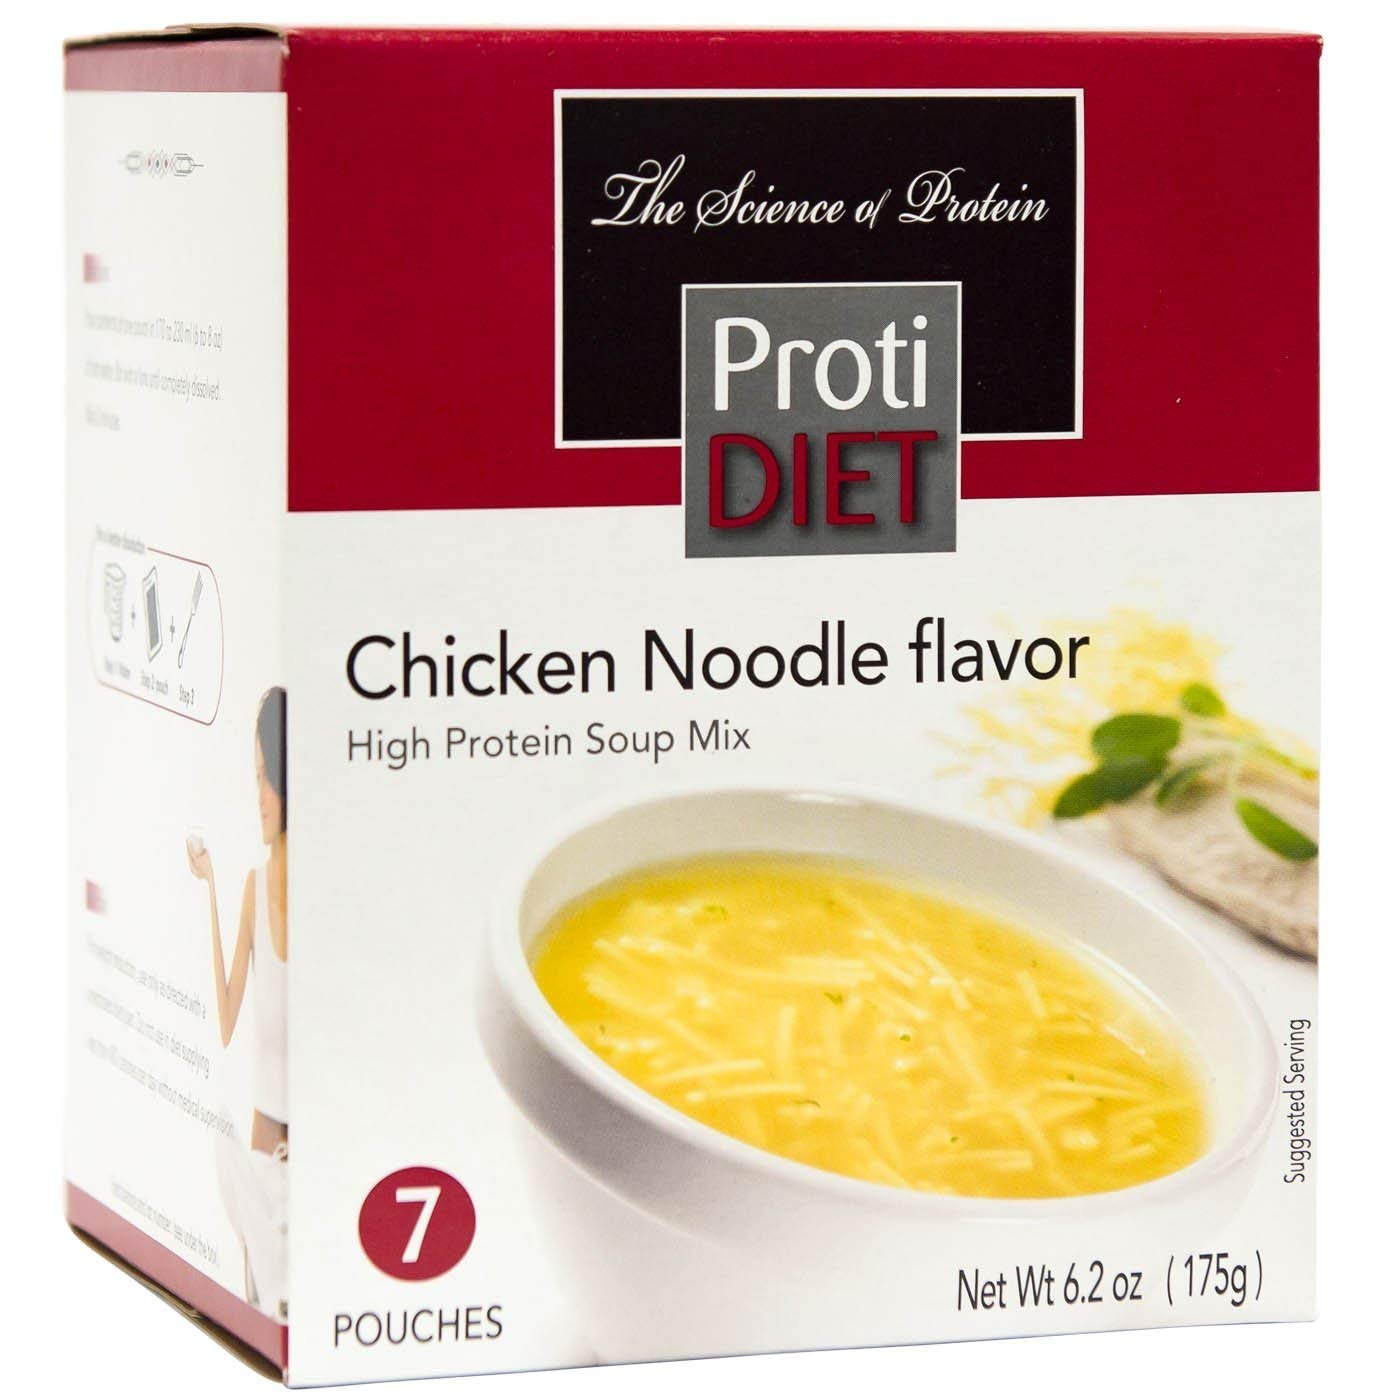 ProtiDiet Soup - Chicken Noodle (7/Box) - High Protein 15g - Low Calorie - Fat Free